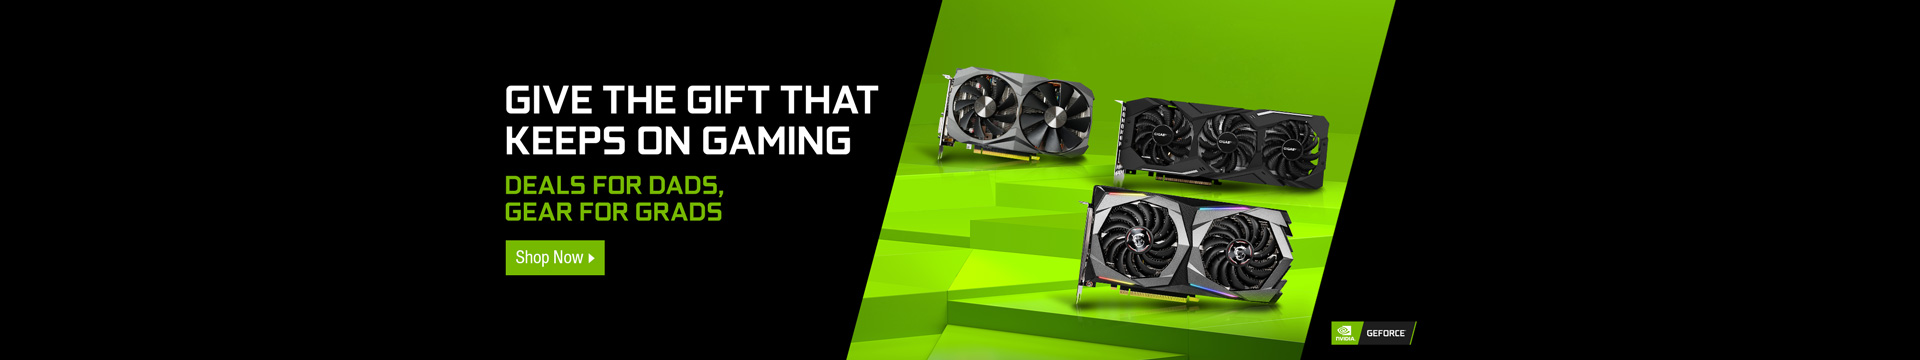 GIVE THE GIFT THAT KEEPS ON GAMING